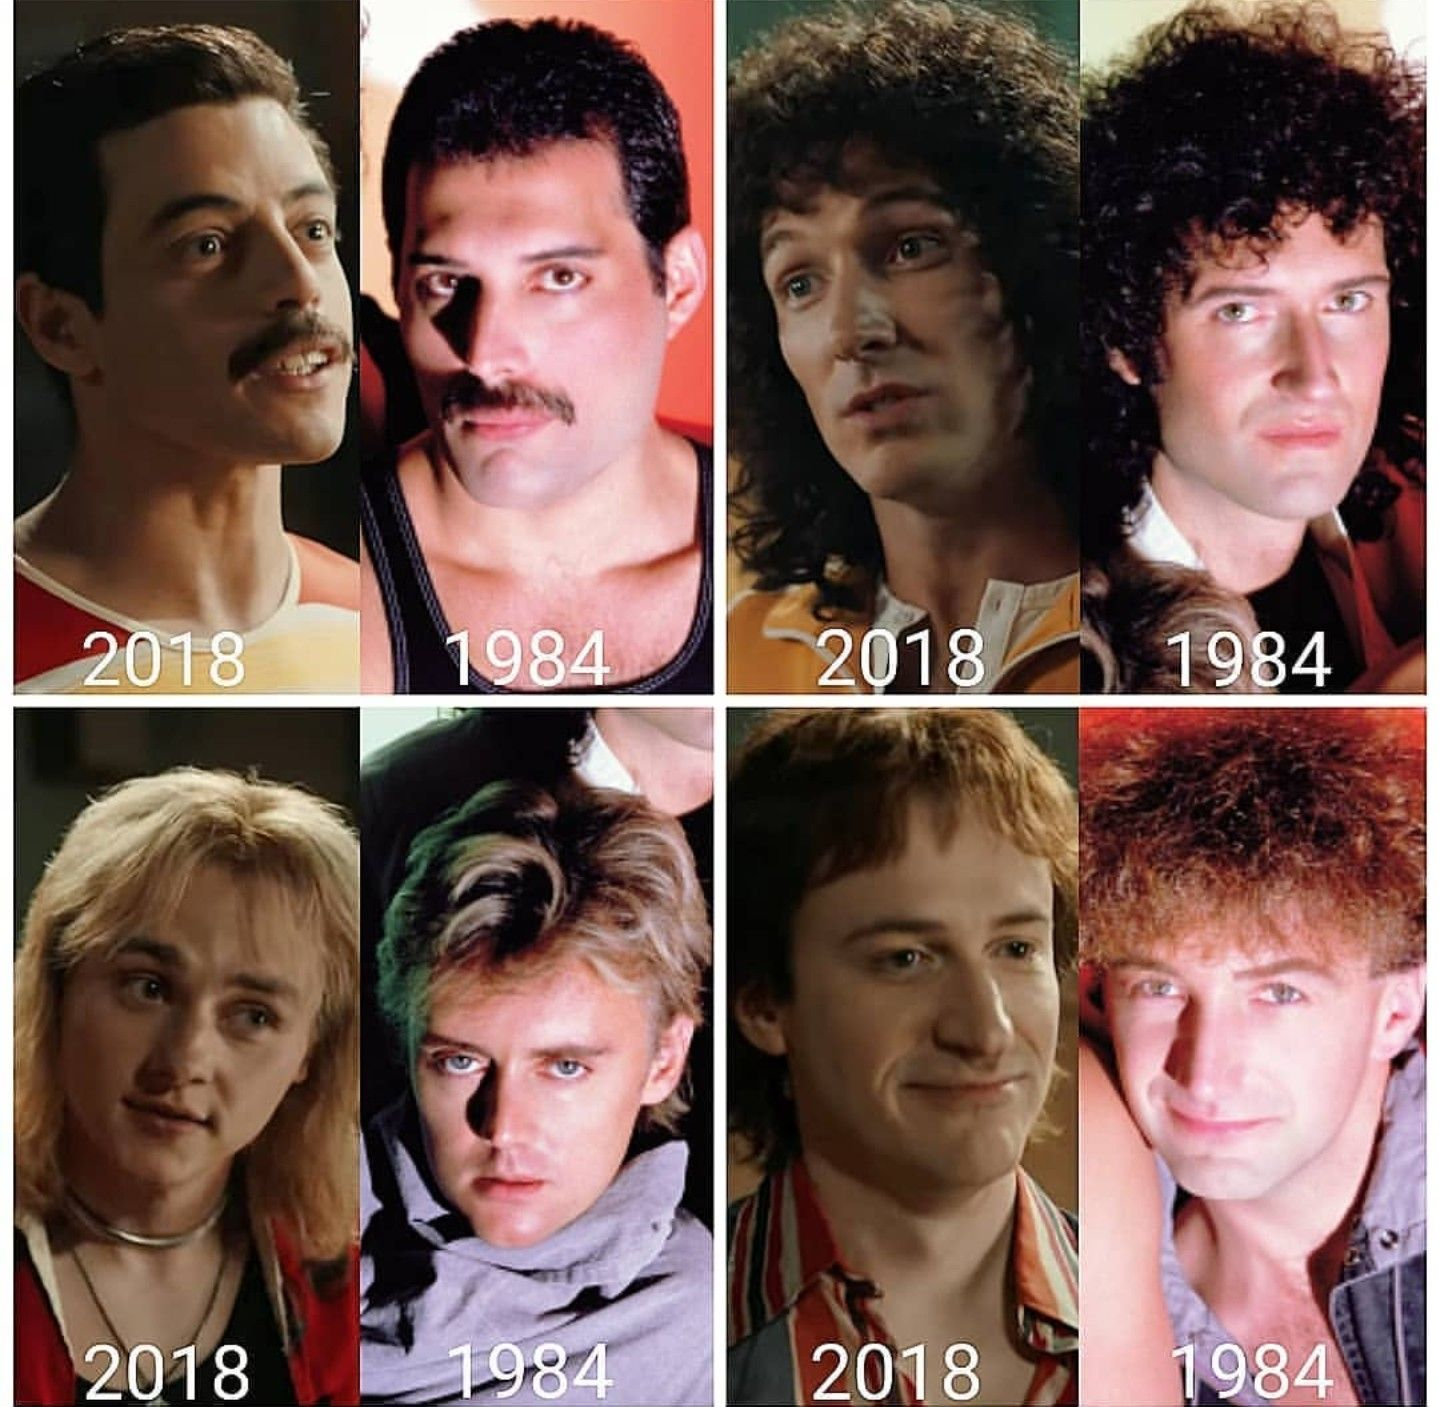 Queen - Bohemian Rhapsody | Queen in 2019 | Queen movie ...